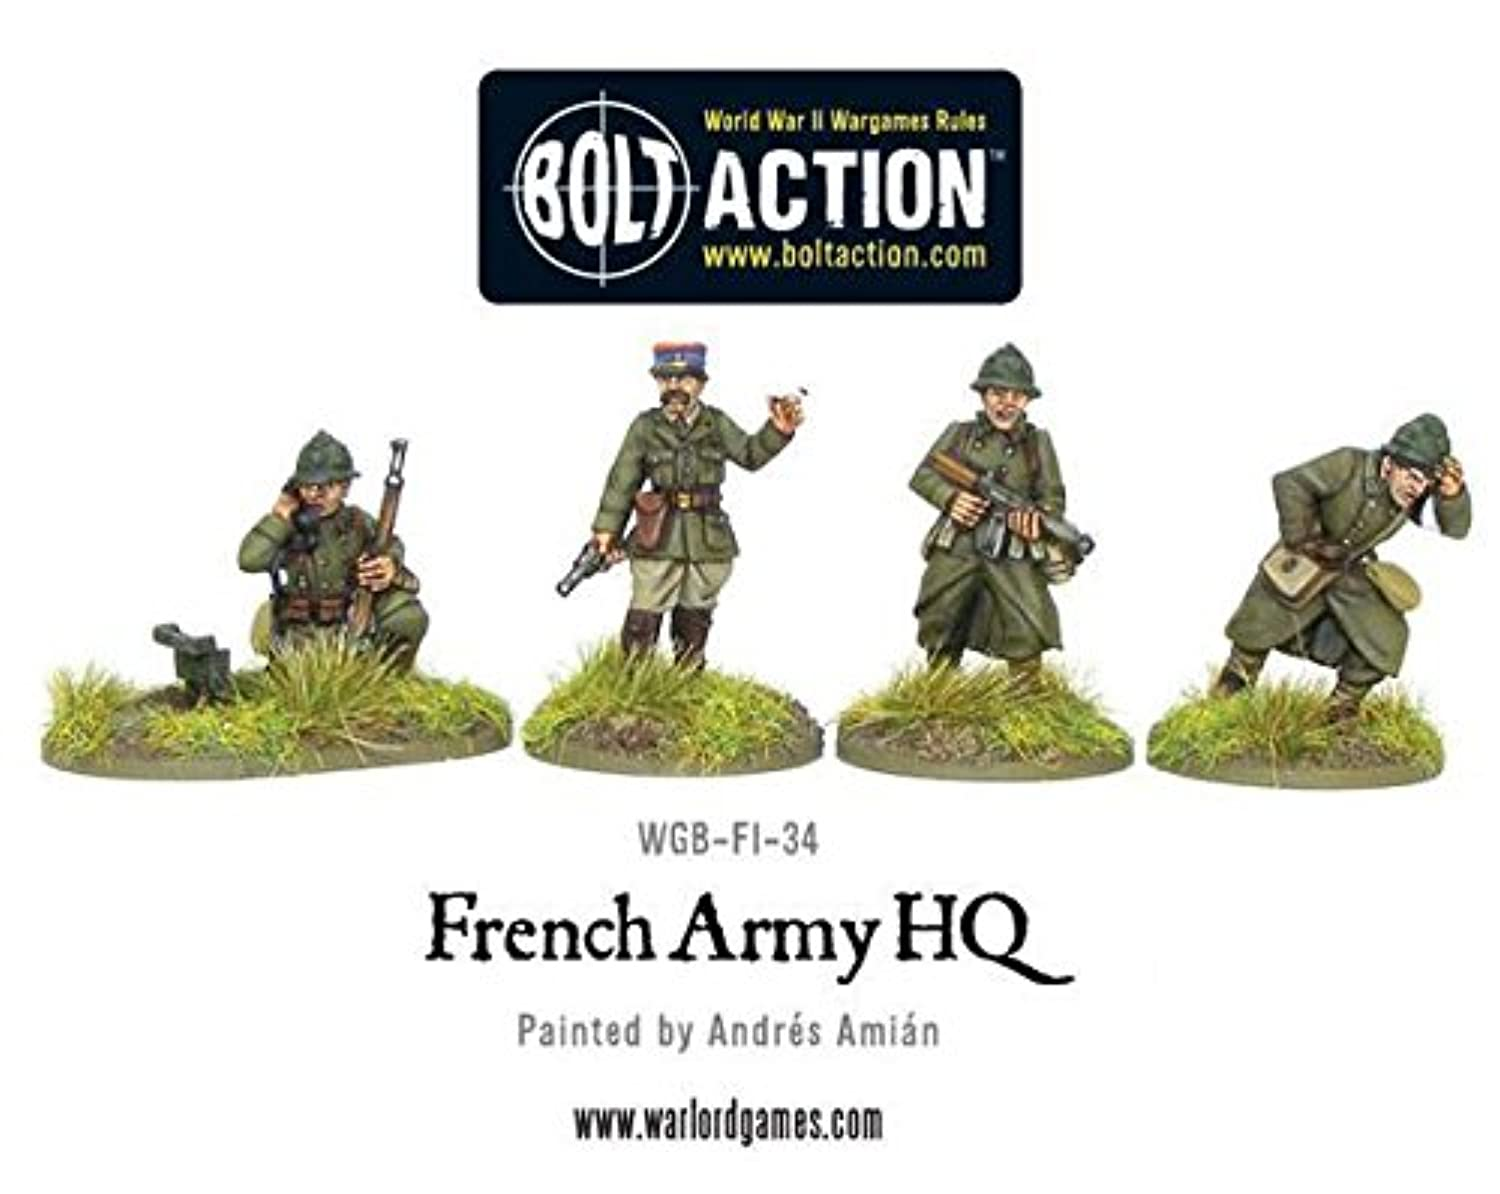 Warlord Games - French Army; Hq, 28mm Bolt Action Wargaming Miniatures